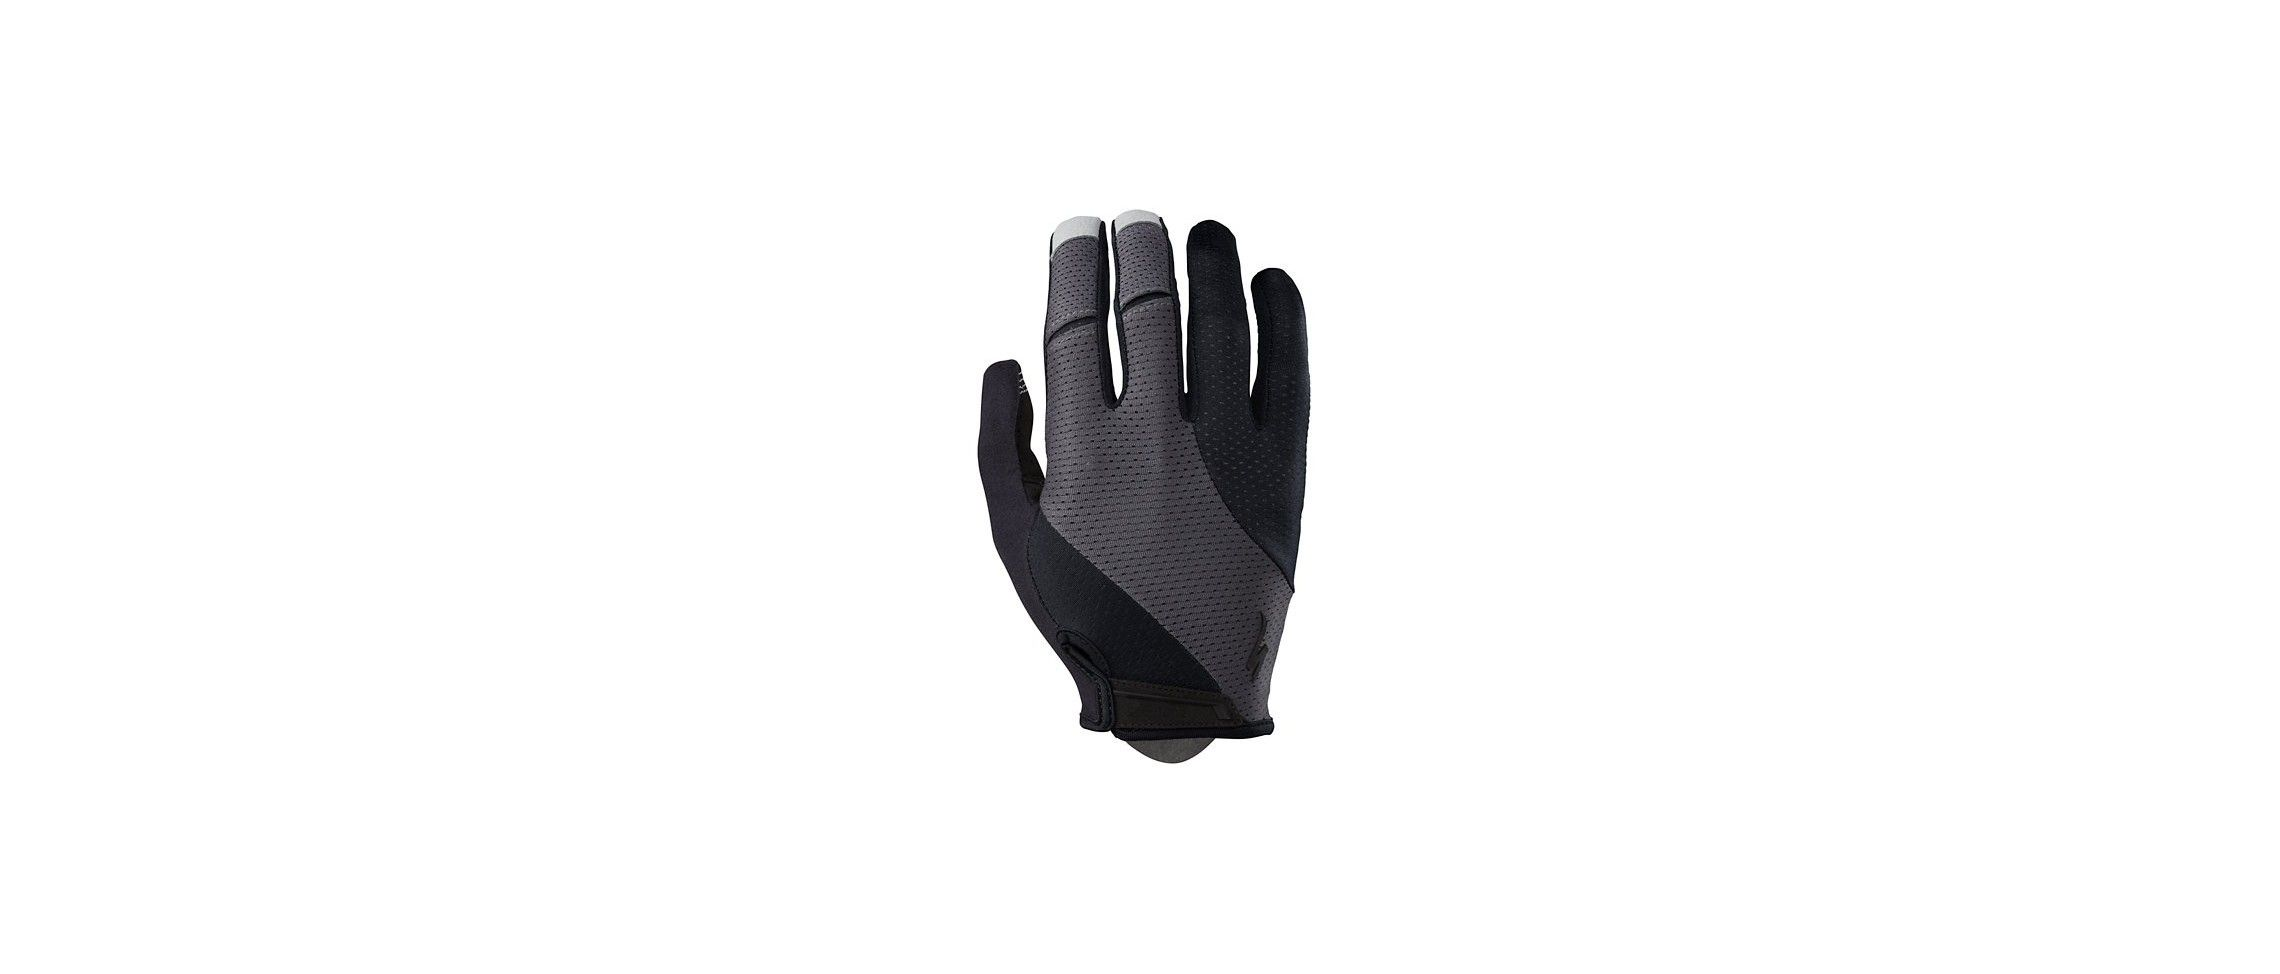 Gel Guantes LF Specialized Body Geometry Negro/Gris Carbono 1 IBKBike.es